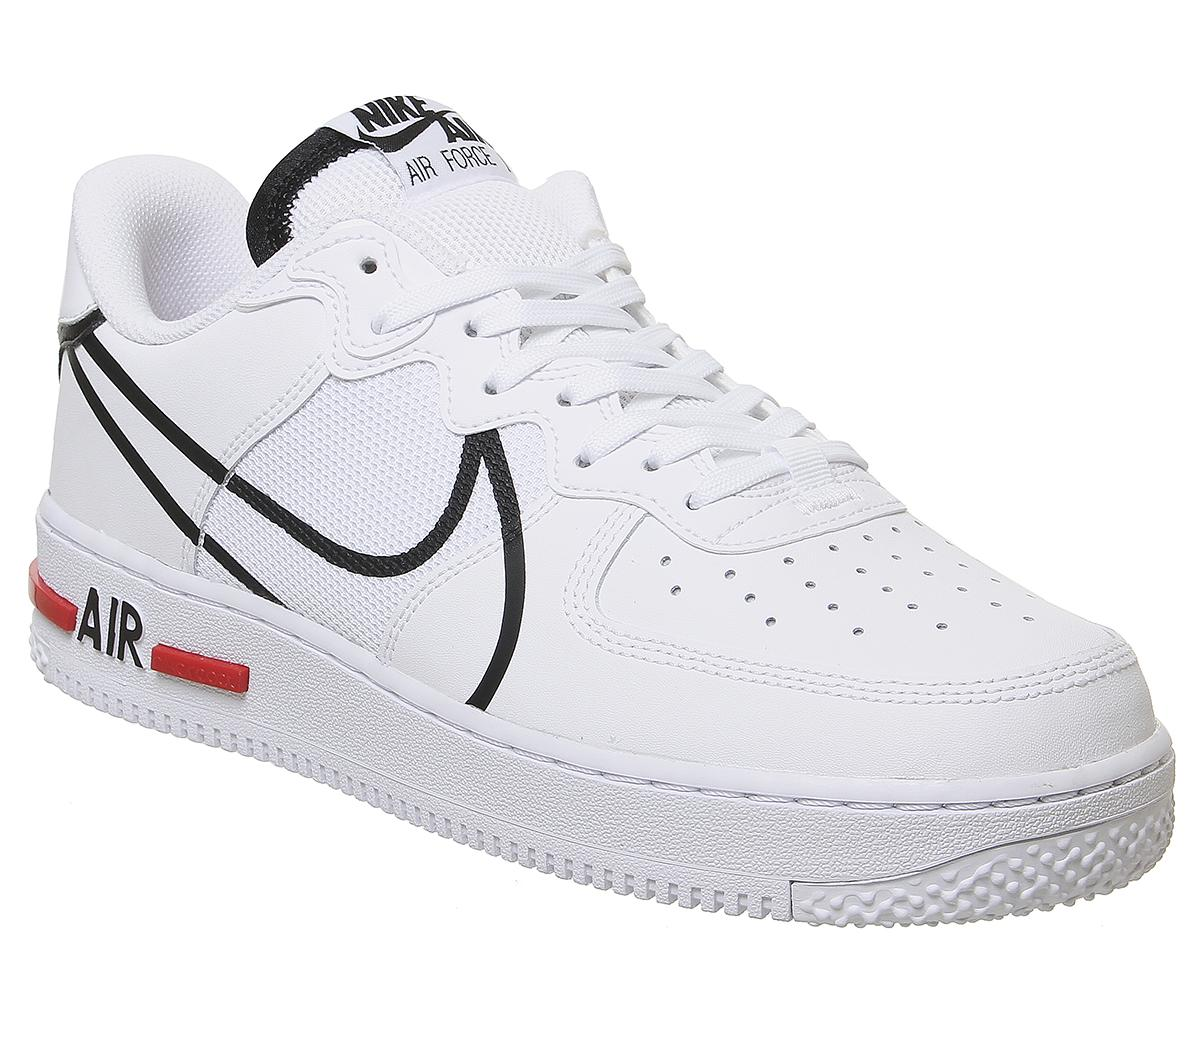 esposas Delgado cobre  Nike Air Force 1 React Trainers White Black University Red - Unisex Sports